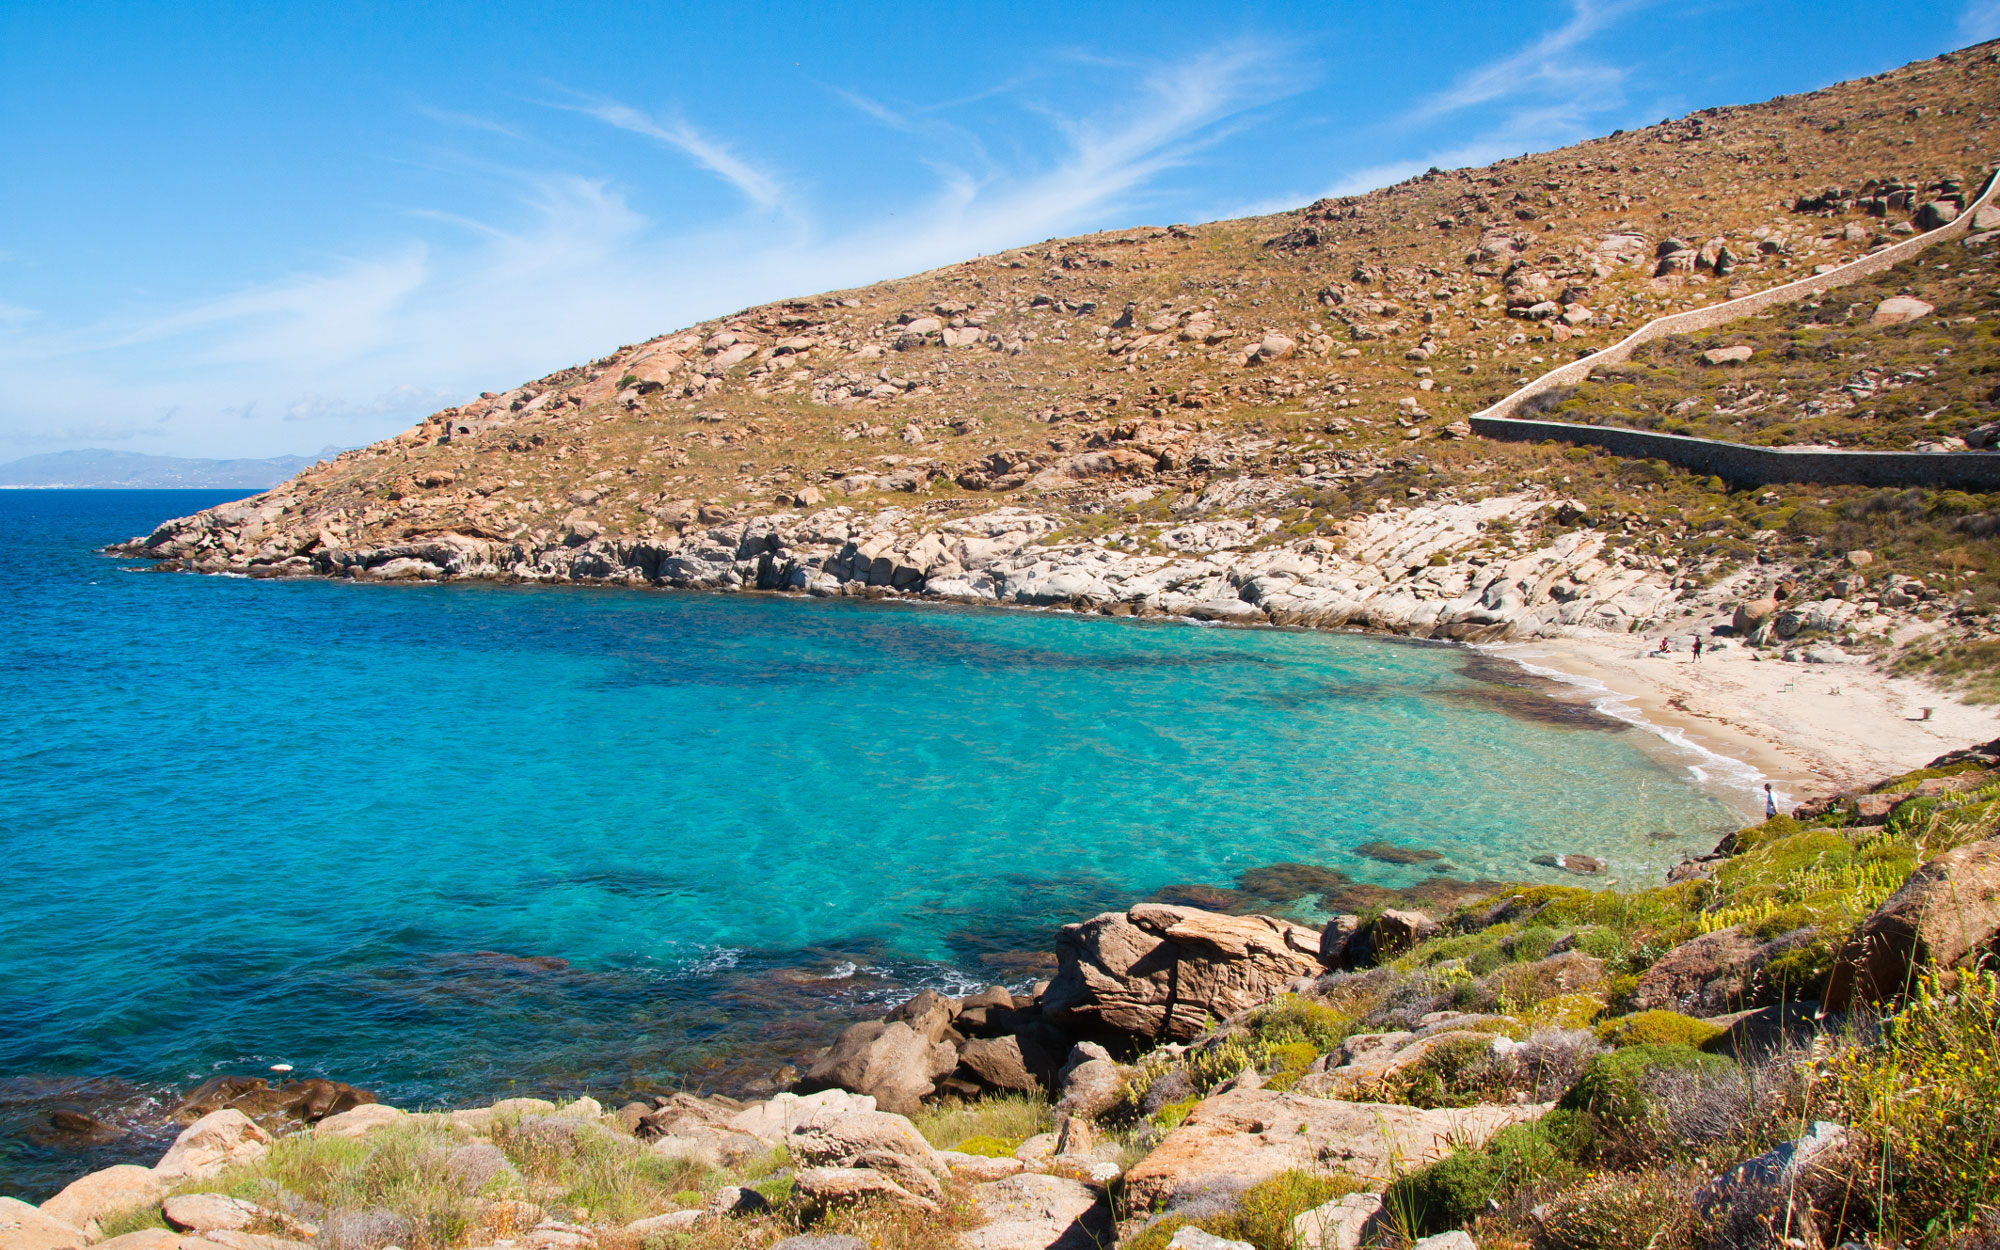 Best Beaches in Greece: Kapari, Mykonos